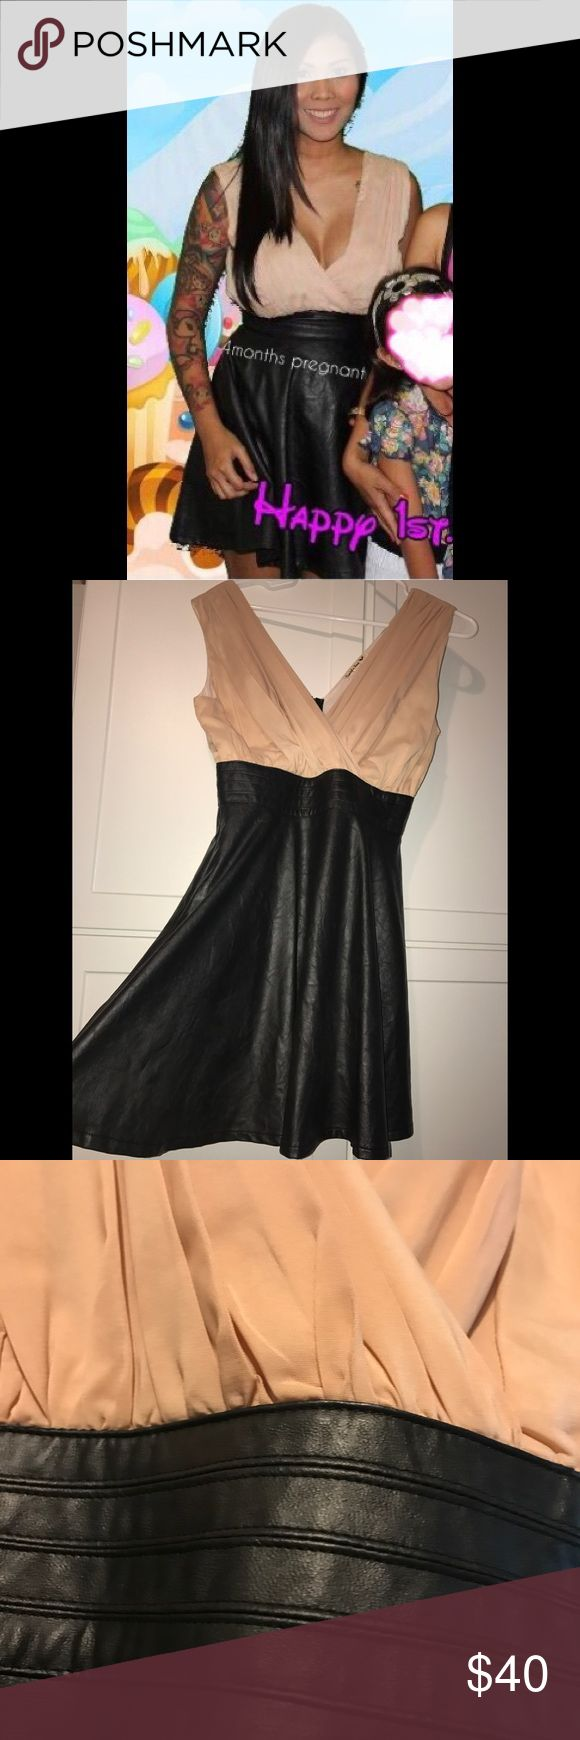 Faux leather peach color dress *DRESS HAS POCKETS*Top half light peachy color.                                            Bottom half of dress is faux leather.worn once to party Dresses